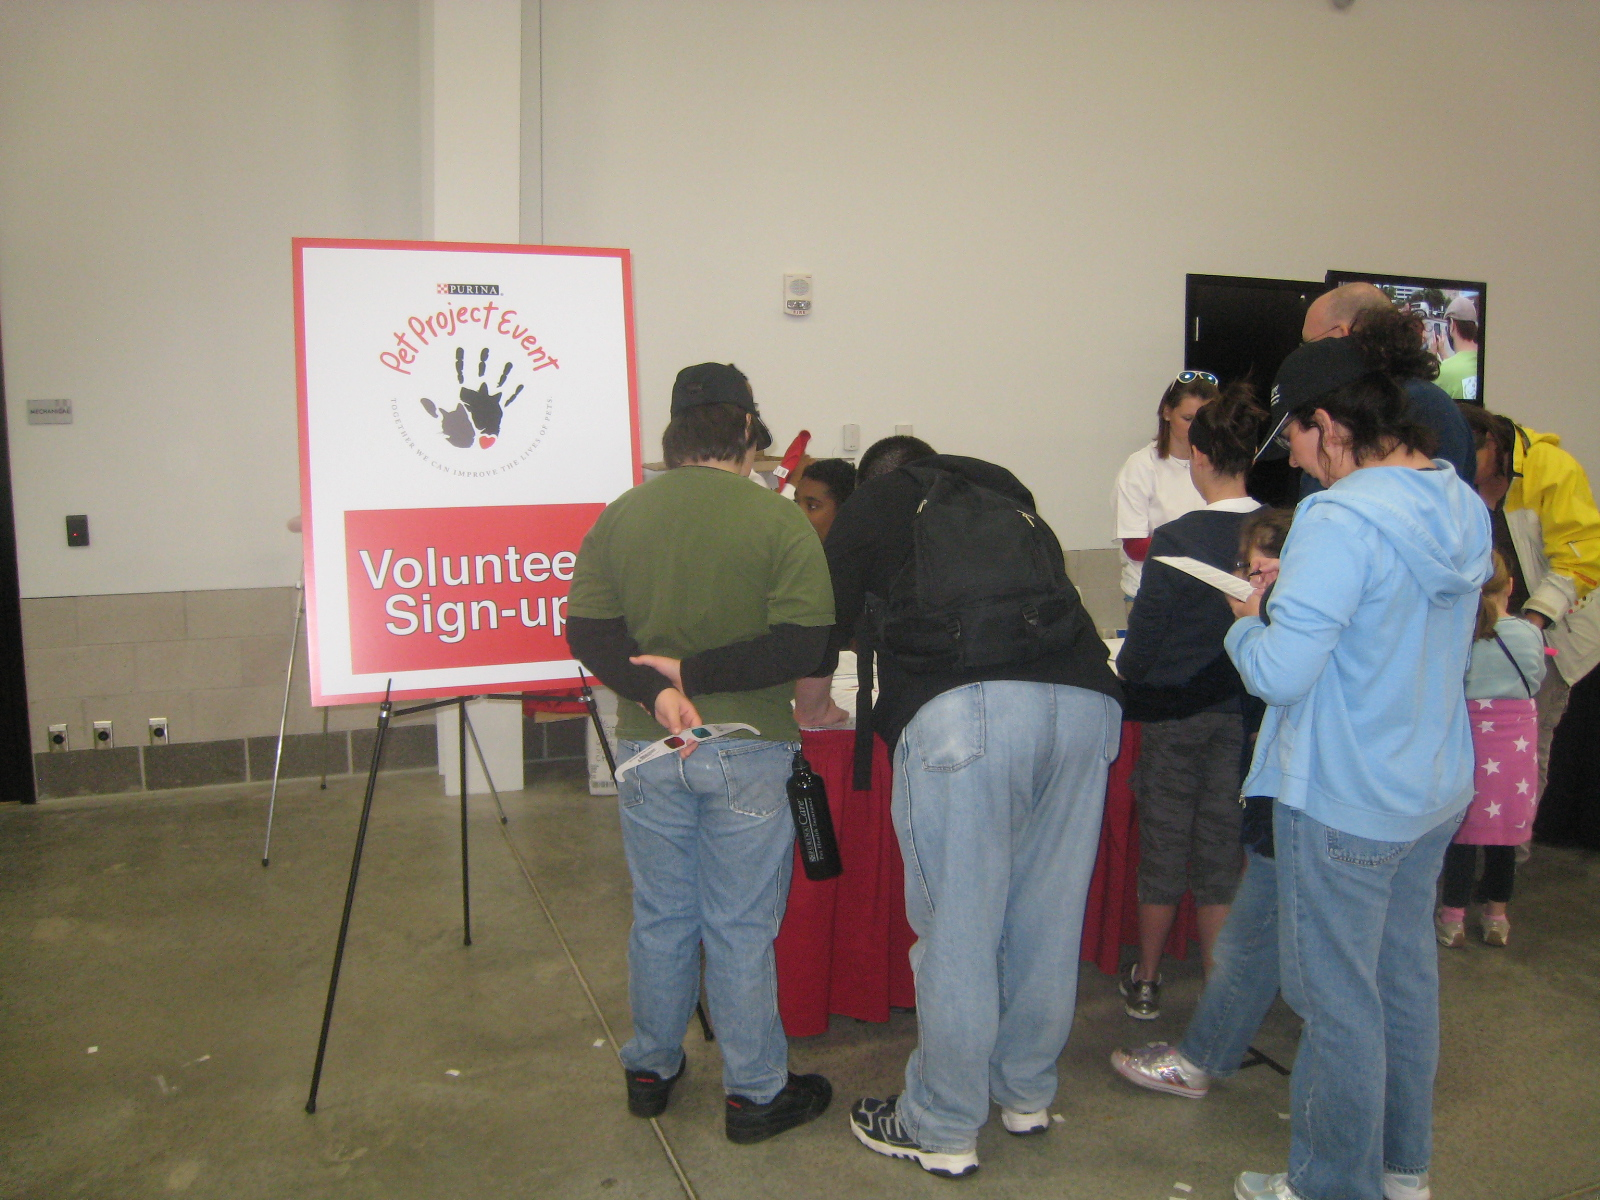 Volunteers signing up for the shelter makeover project